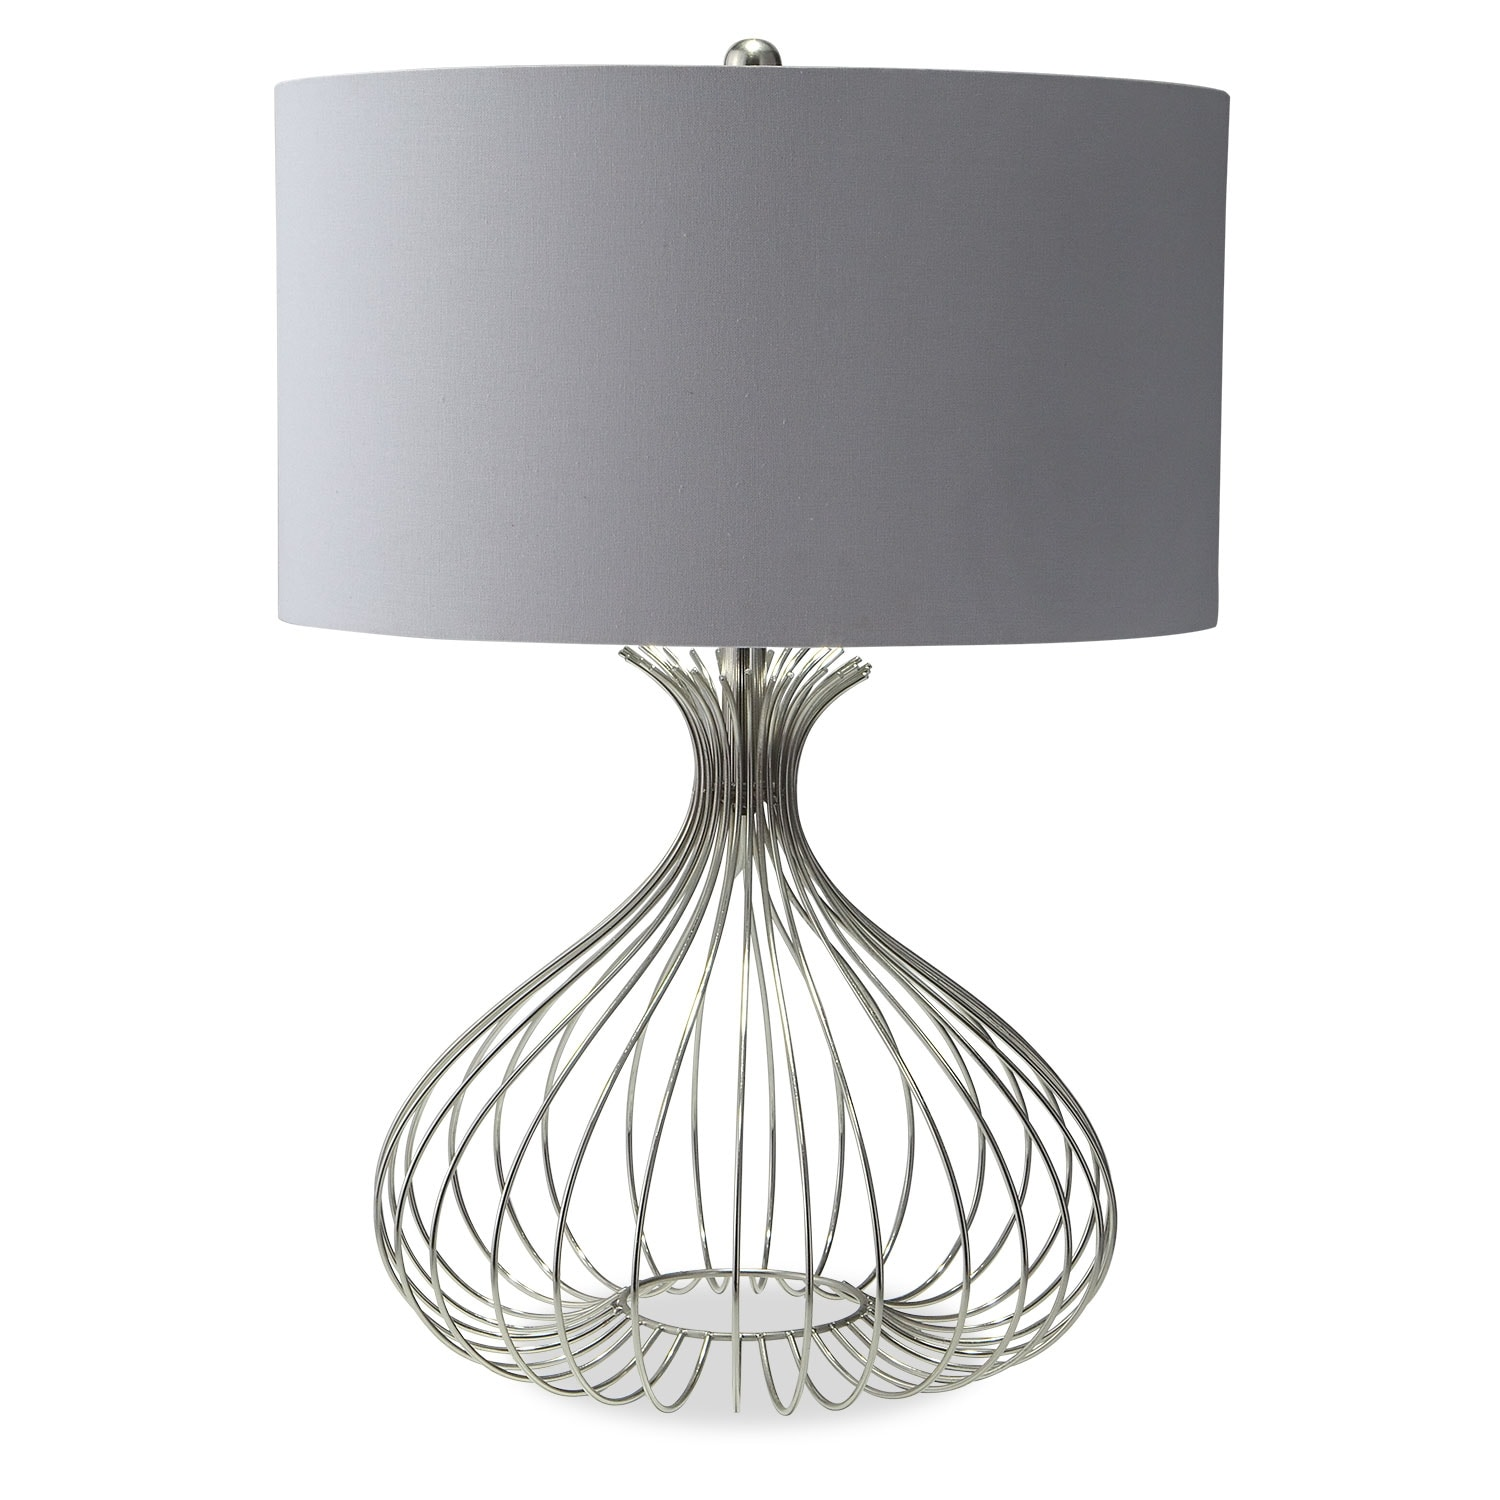 Wire table lamp wire center nickel wire table lamp american signature furniture rh americansignaturefurniture com wire table lamp uk wire table keyboard keysfo Image collections